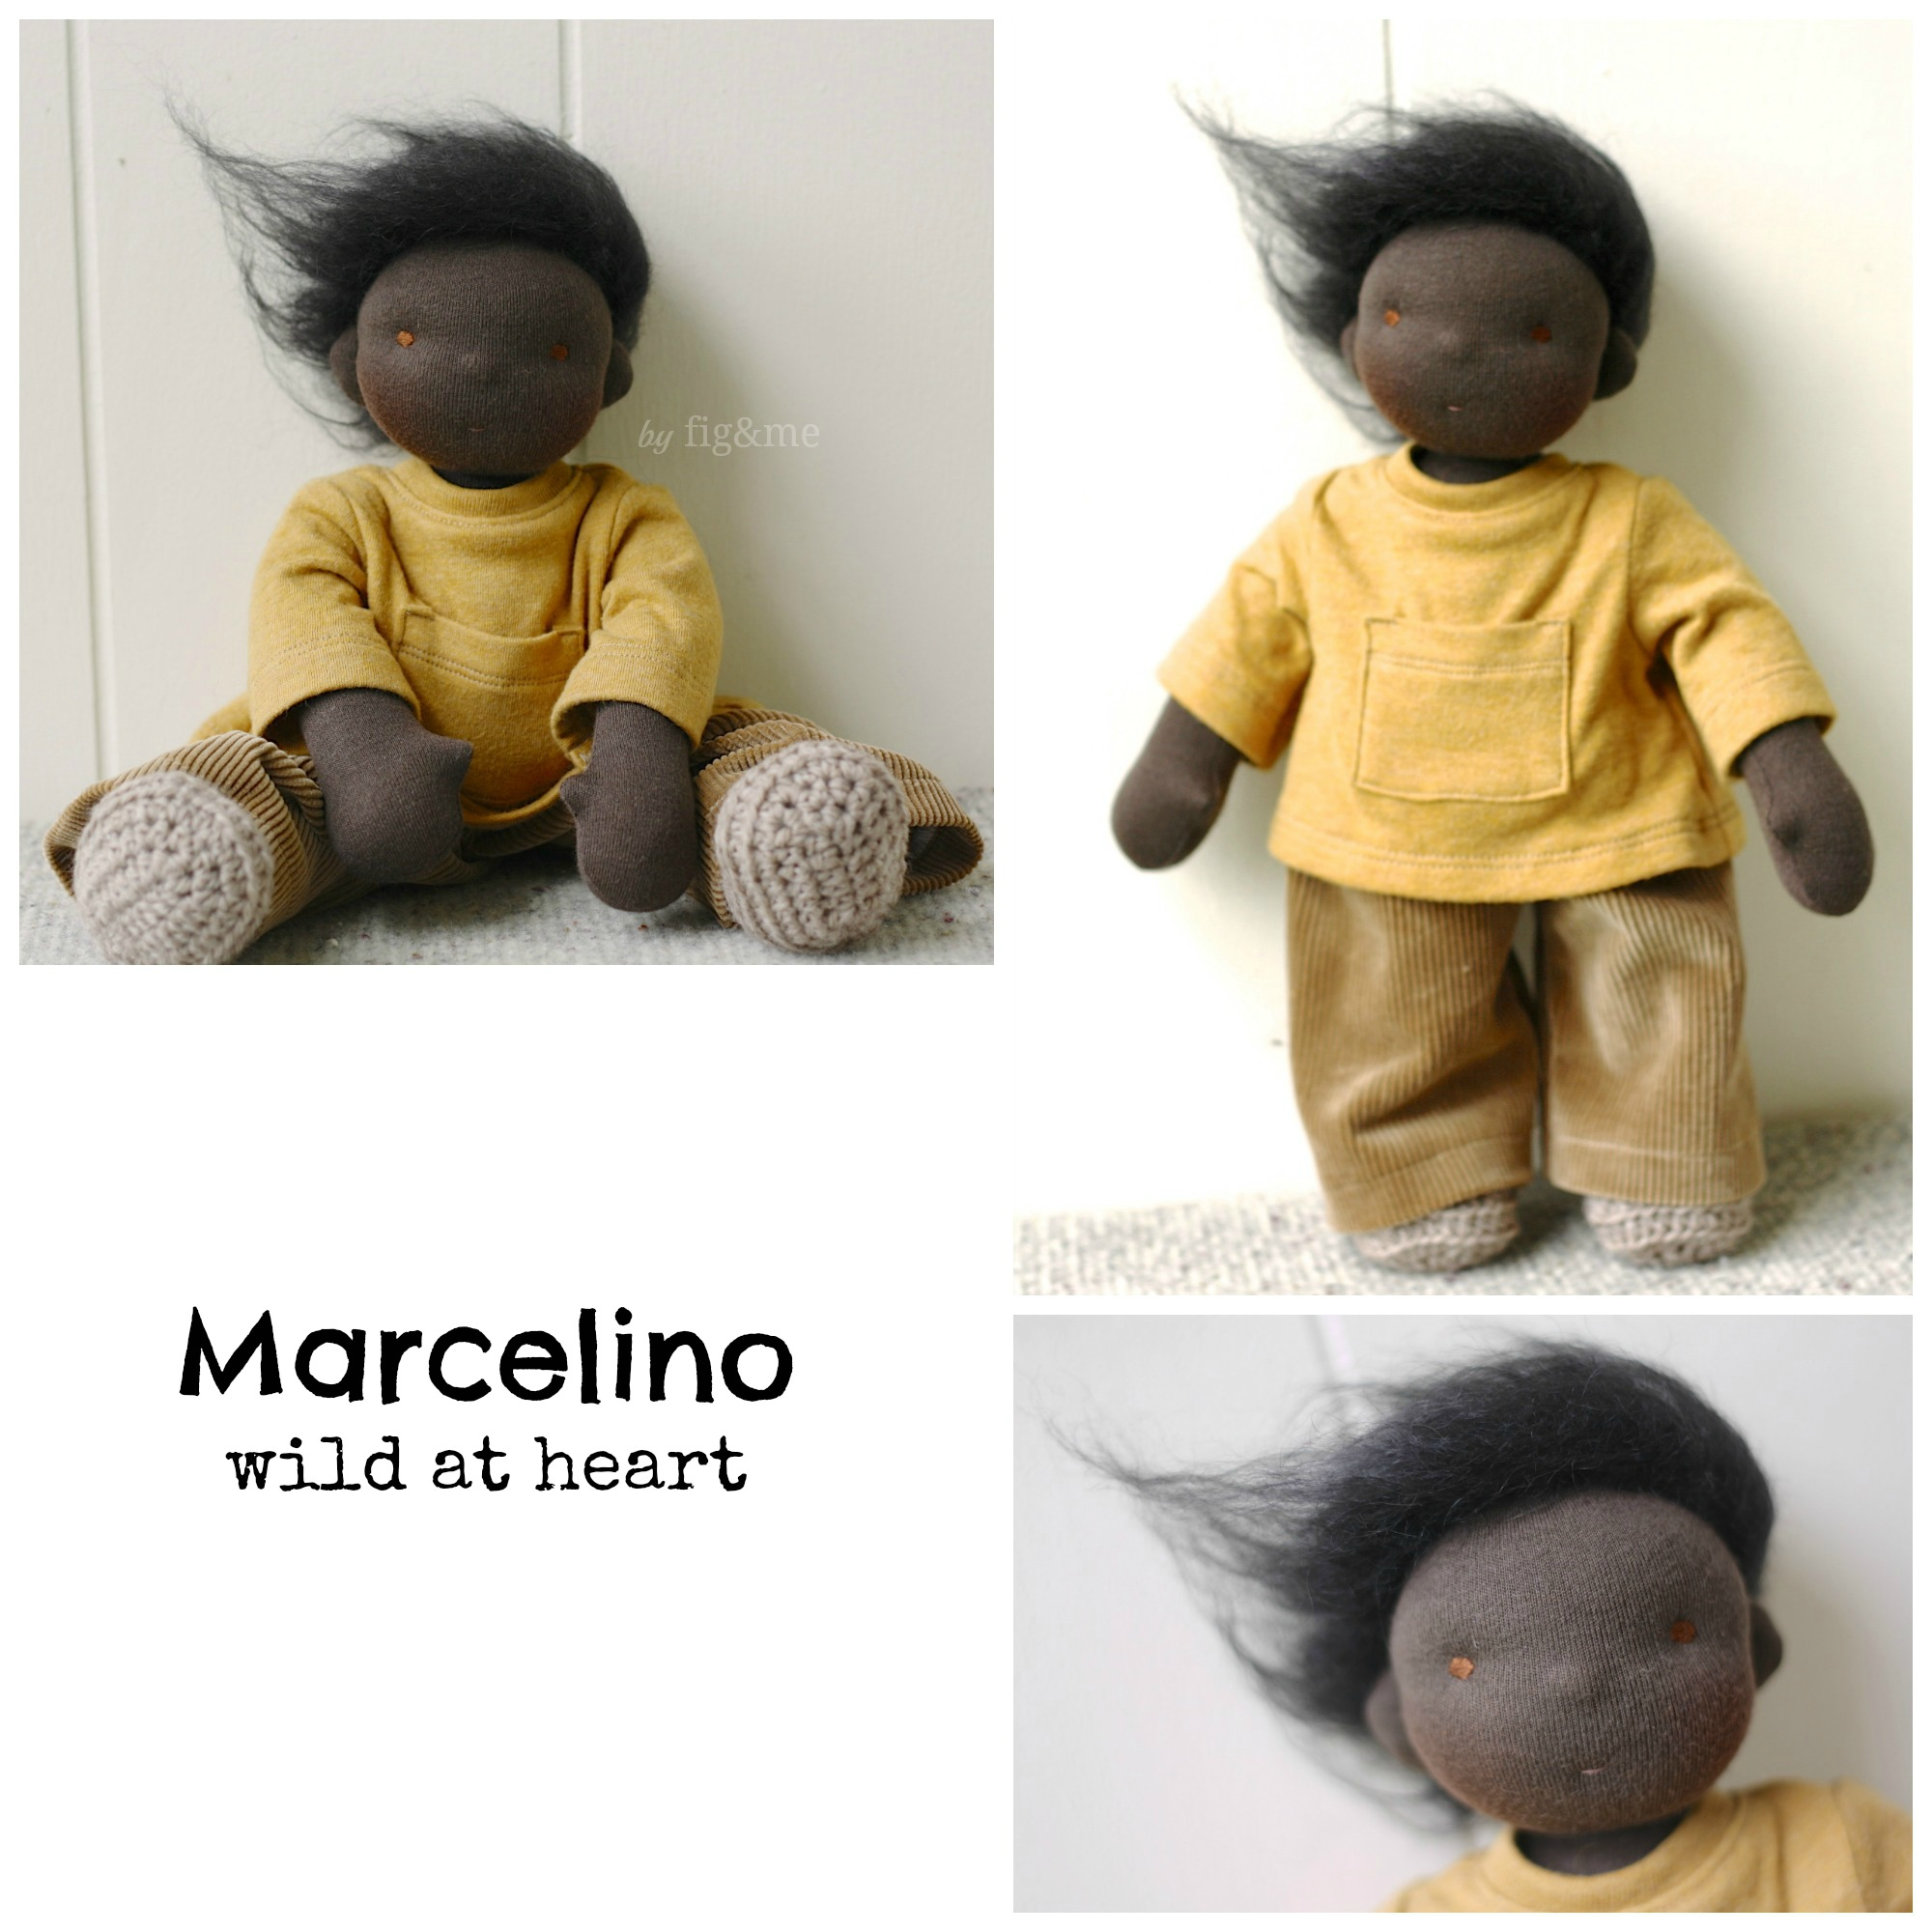 Marcelino, wild at heart. By Fig and me.